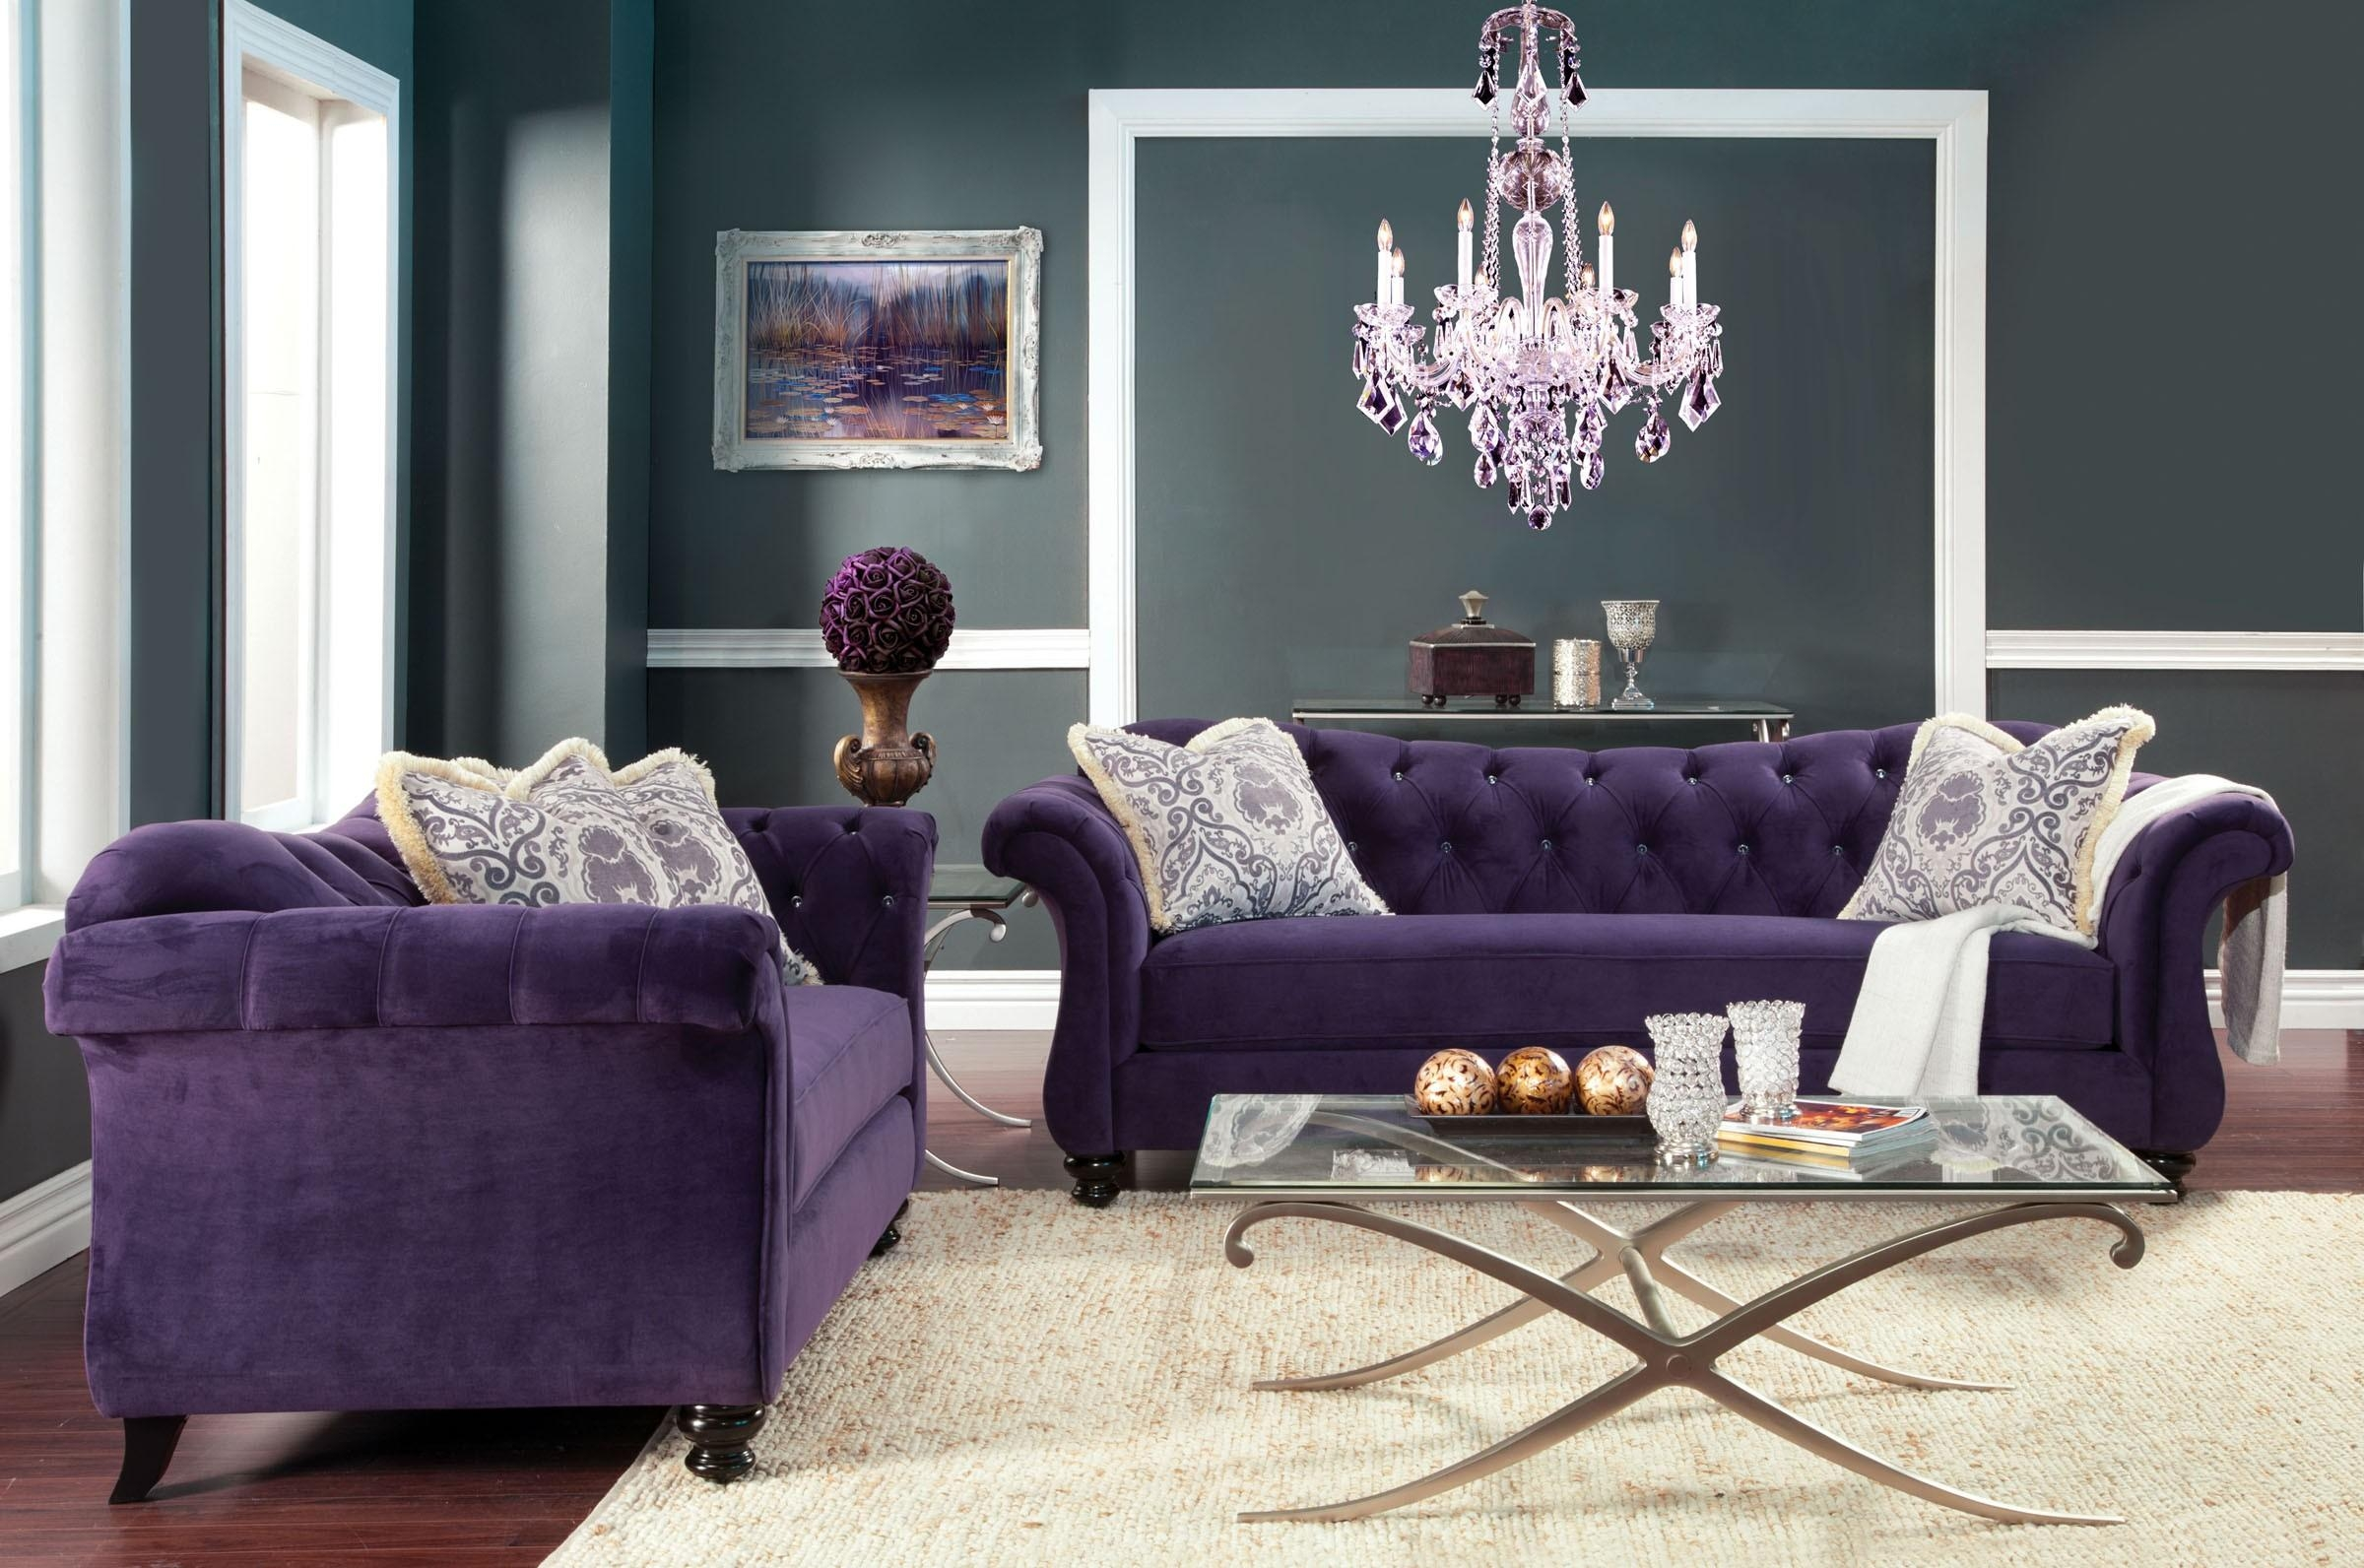 25 Best Chesterfield Sofas To Buy In 2017 Throughout Purple Chesterfield Sofas (Image 4 of 20)